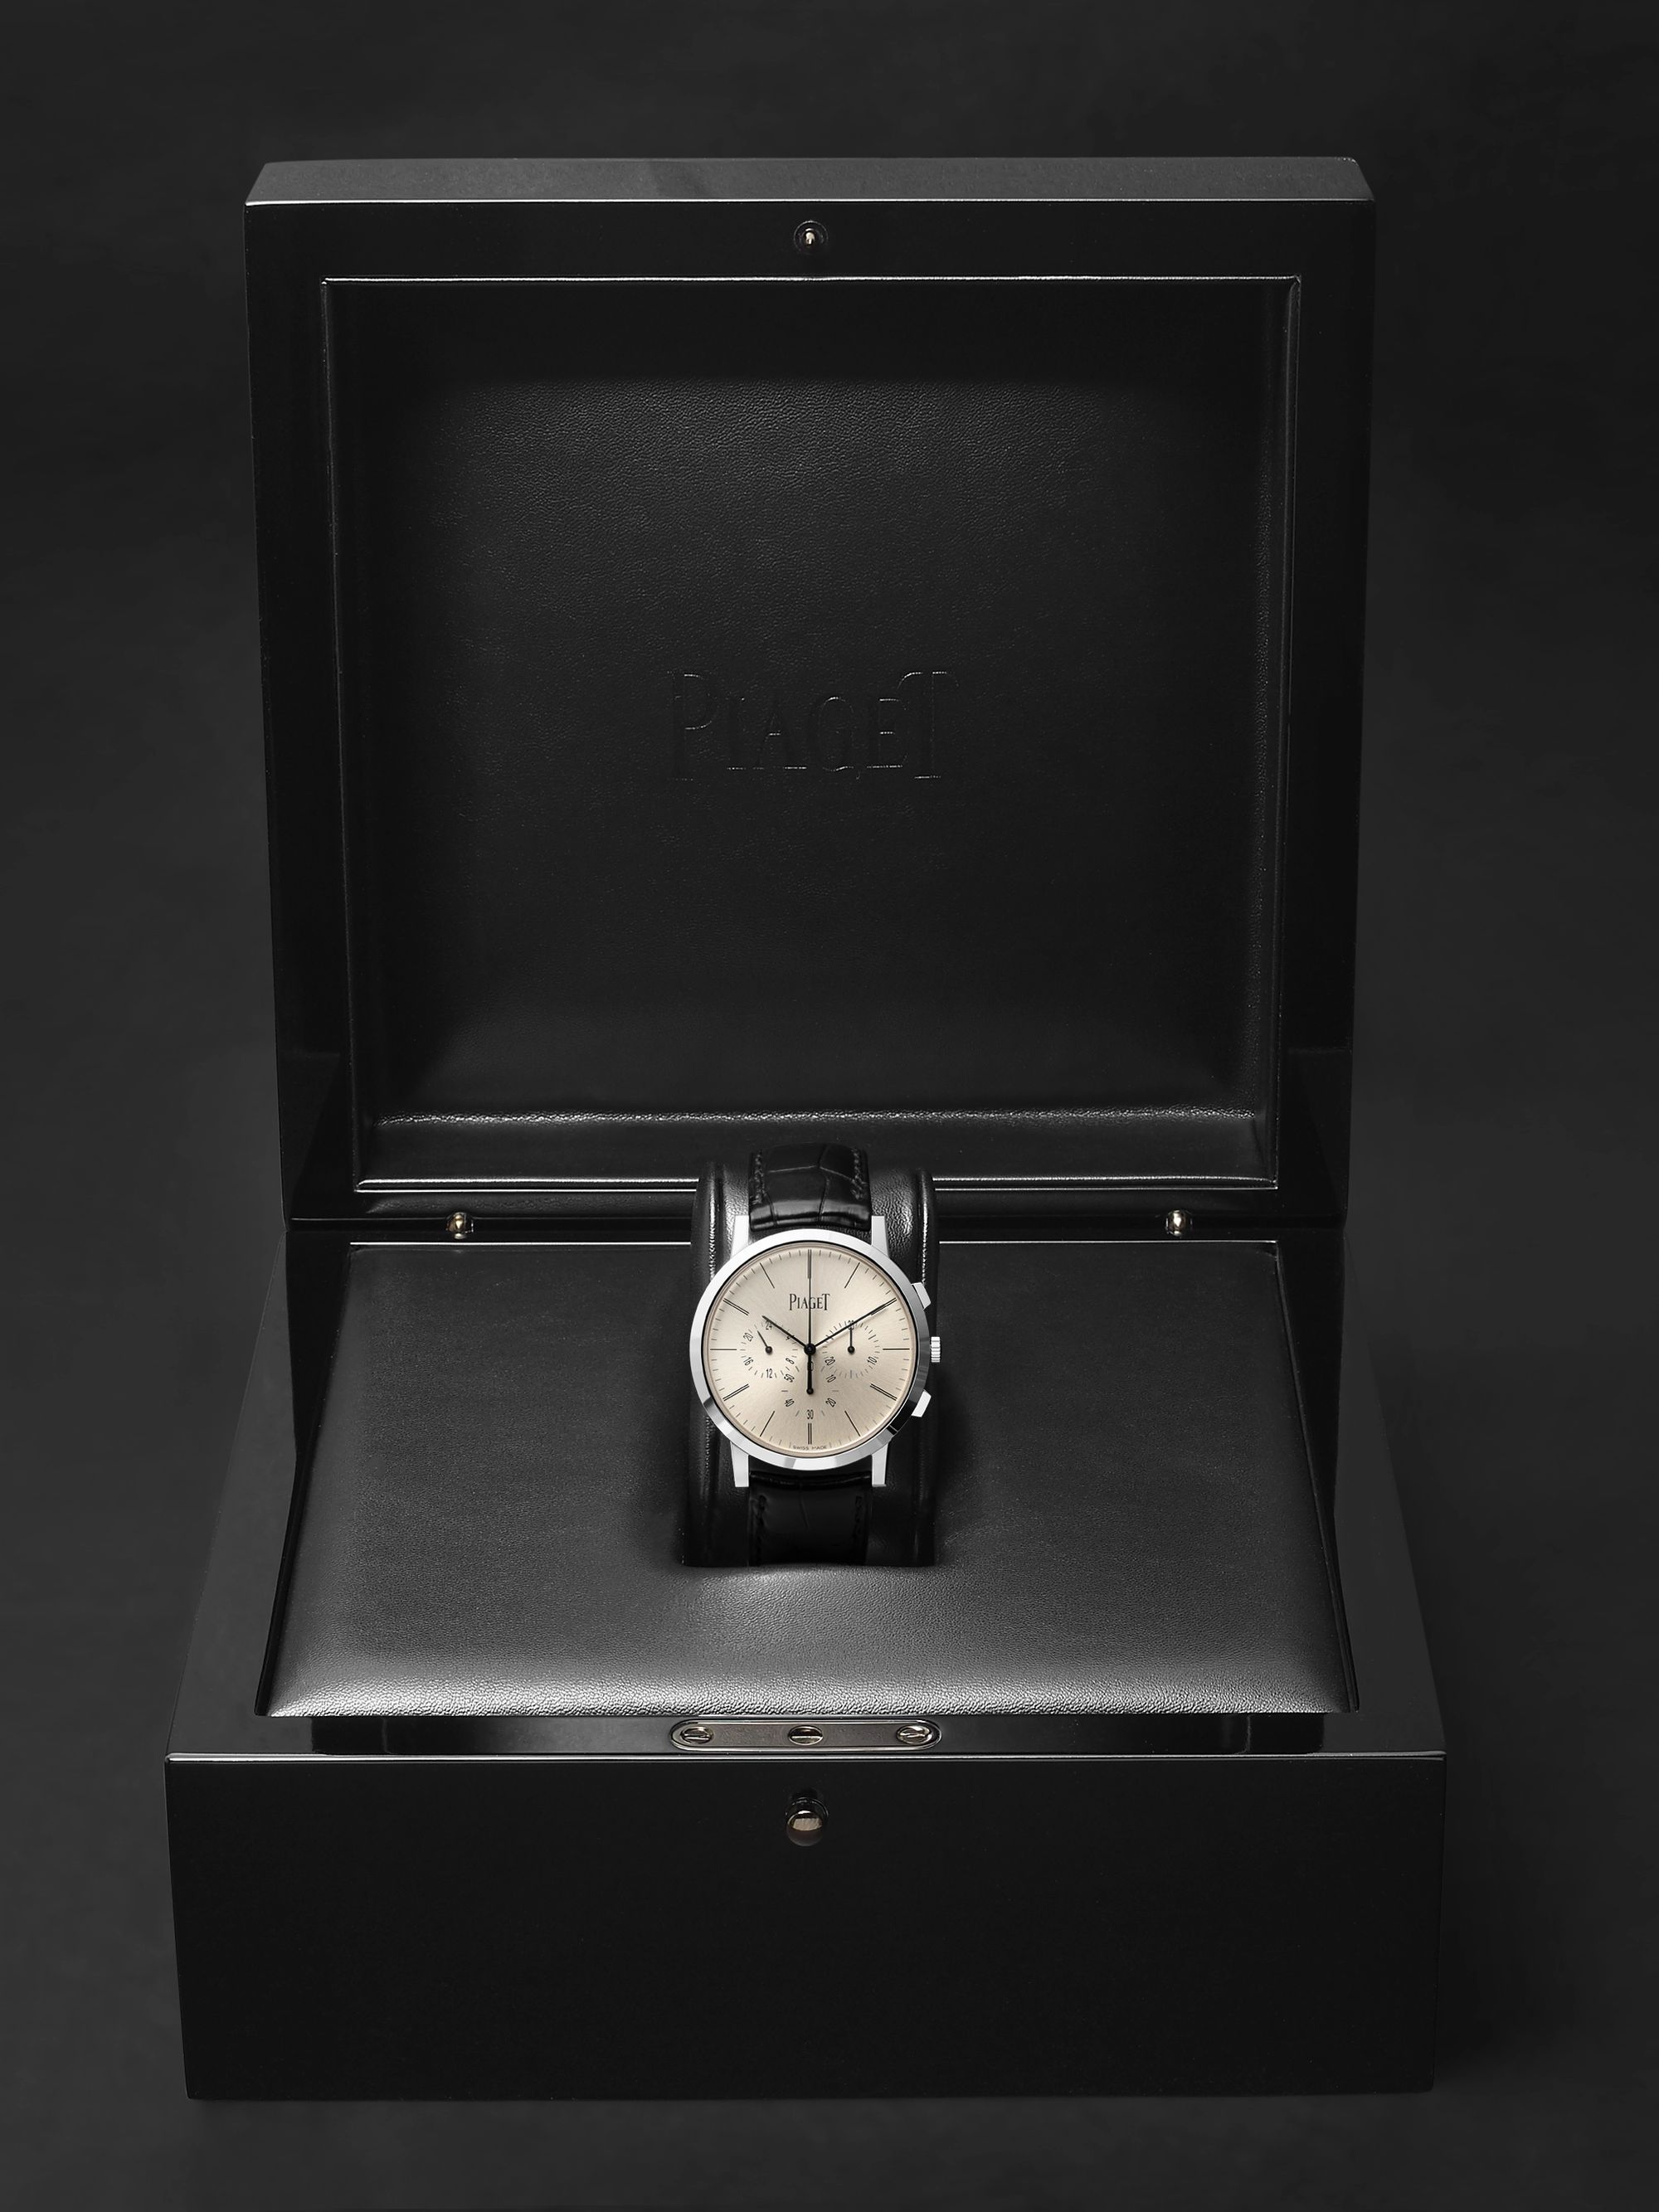 Piaget Altiplano Flyback Chronograph 41mm 18-Karat White Gold and Alligator Watch, Ref. No. G0A41035